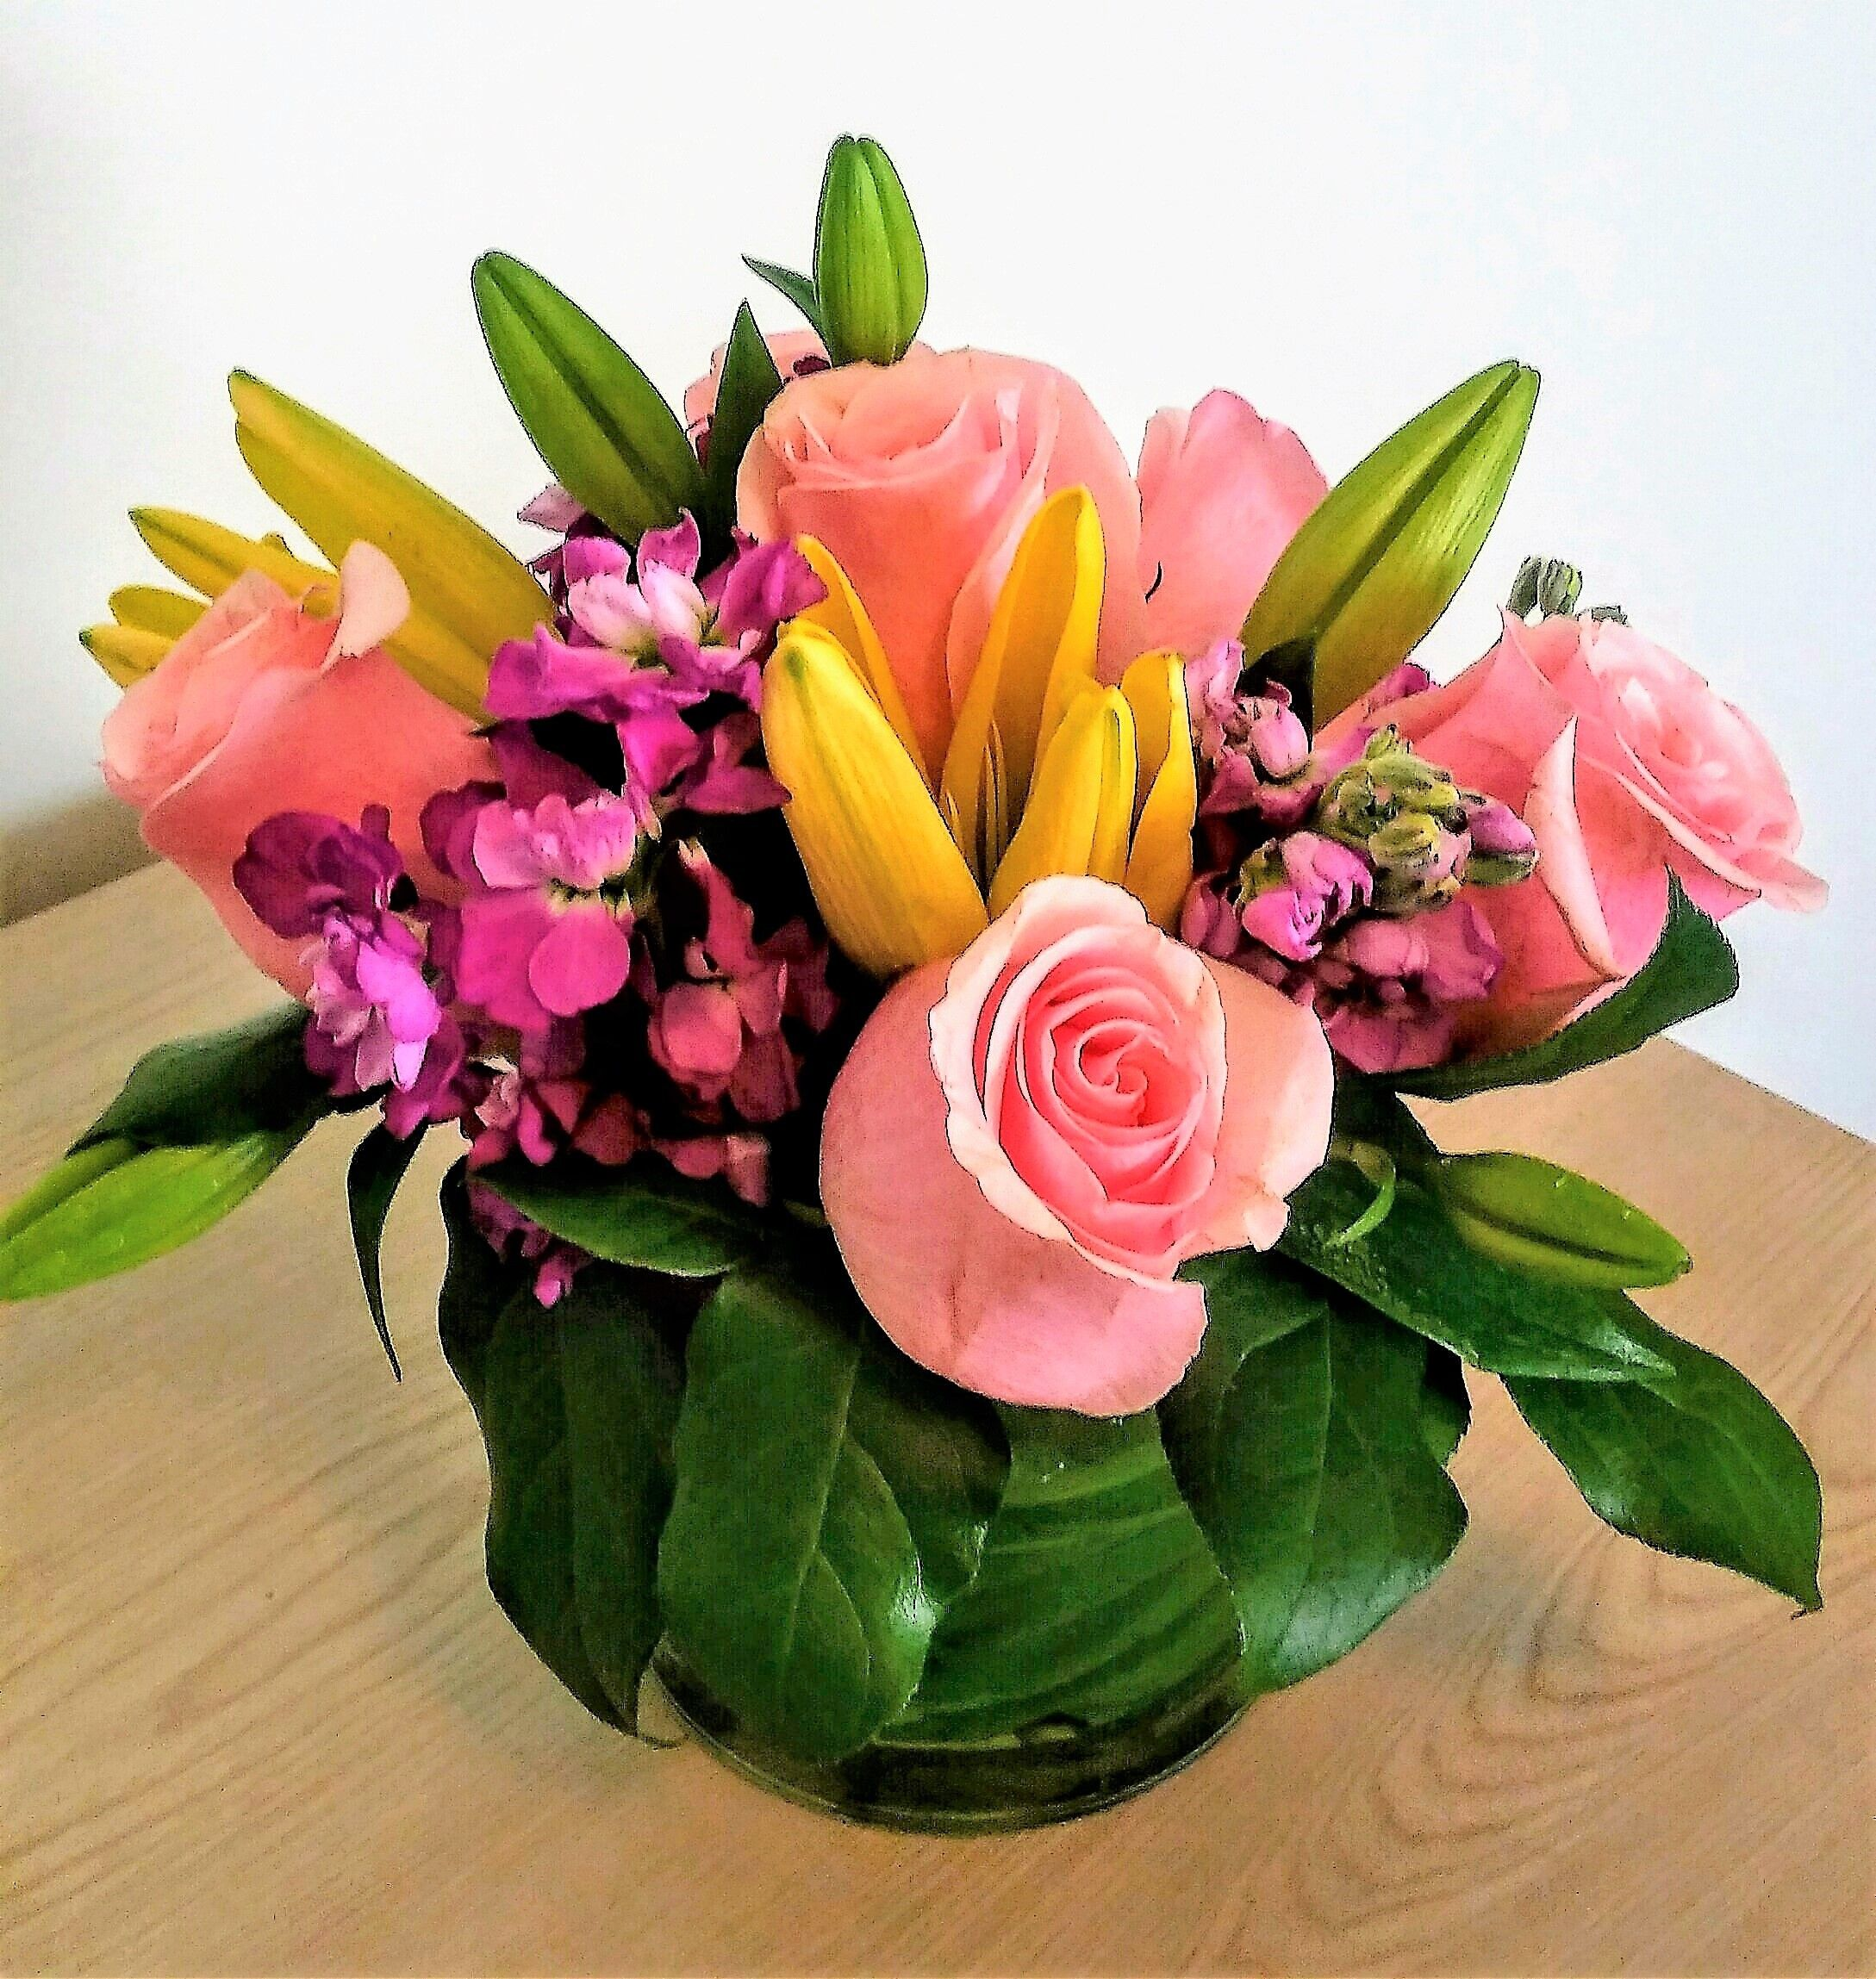 Blushing beauty by the yellow rose florist basket flower